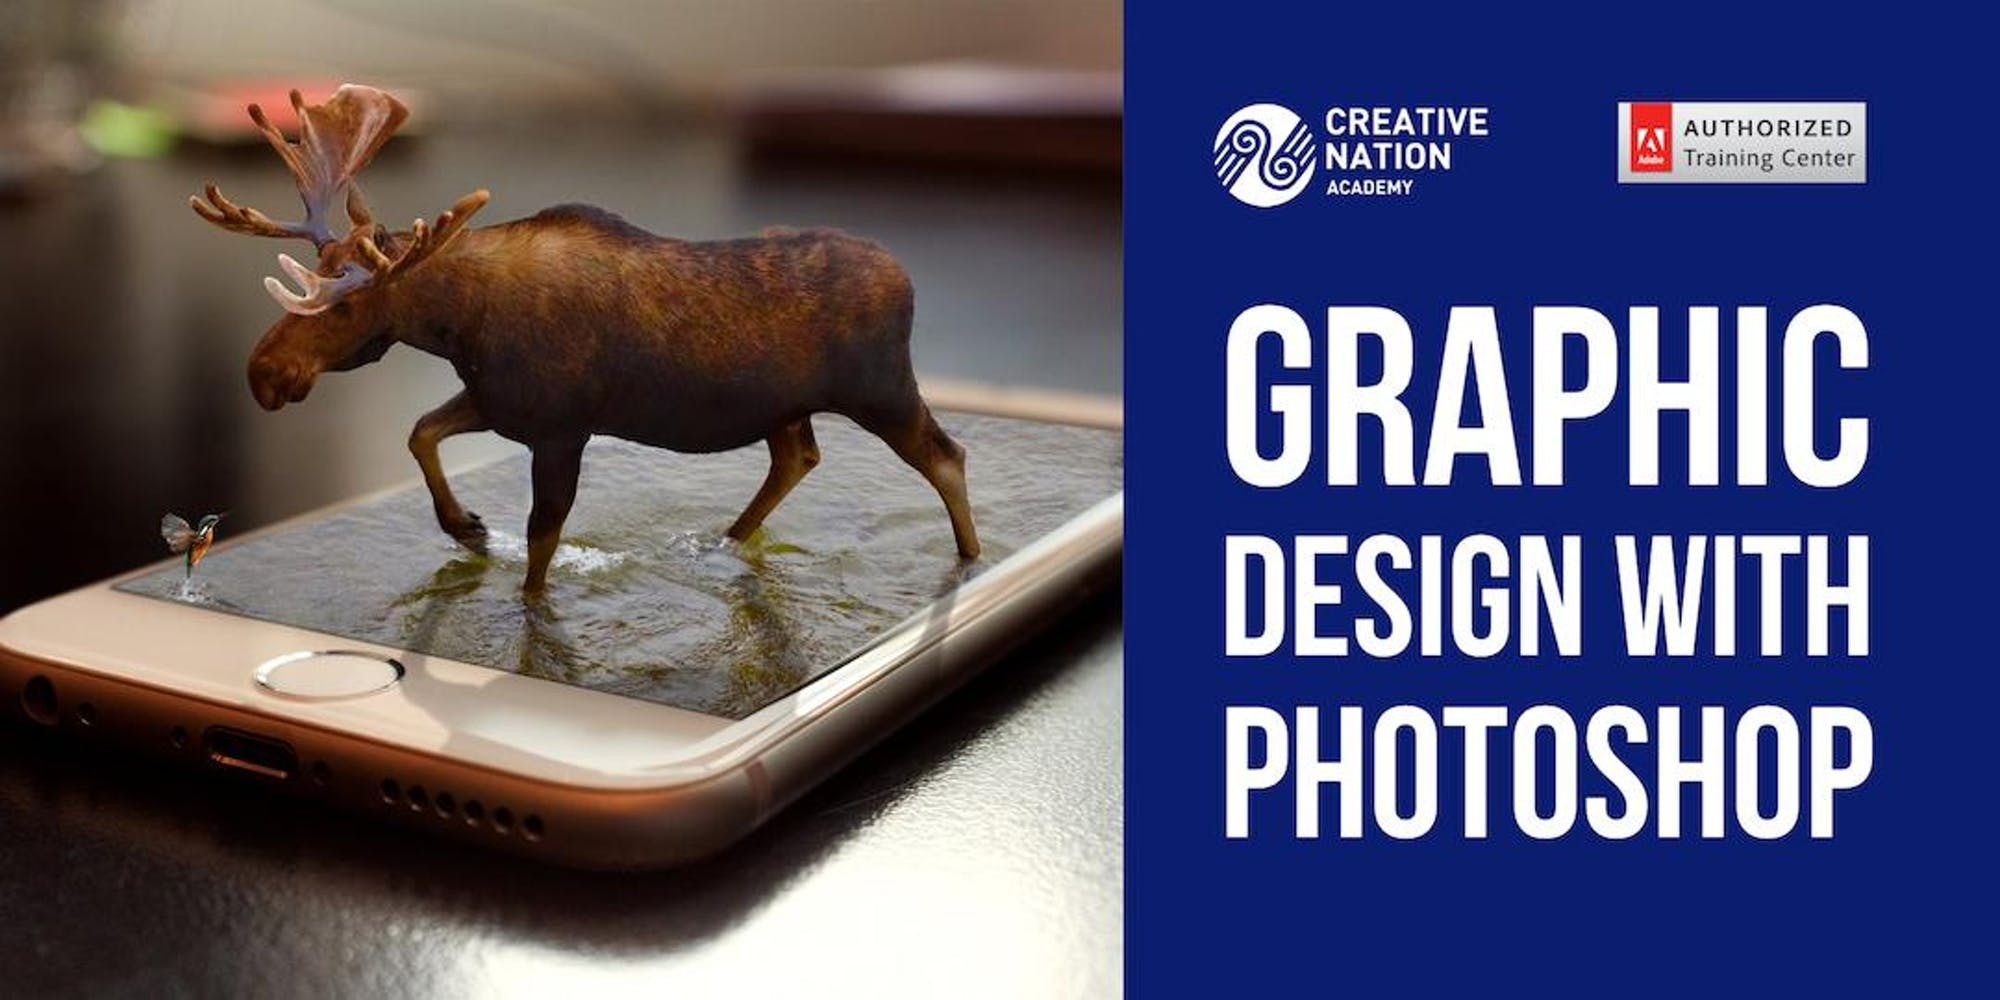 GRAPHIC DESIGN WITH PHOTOSHOP WORKSHOP